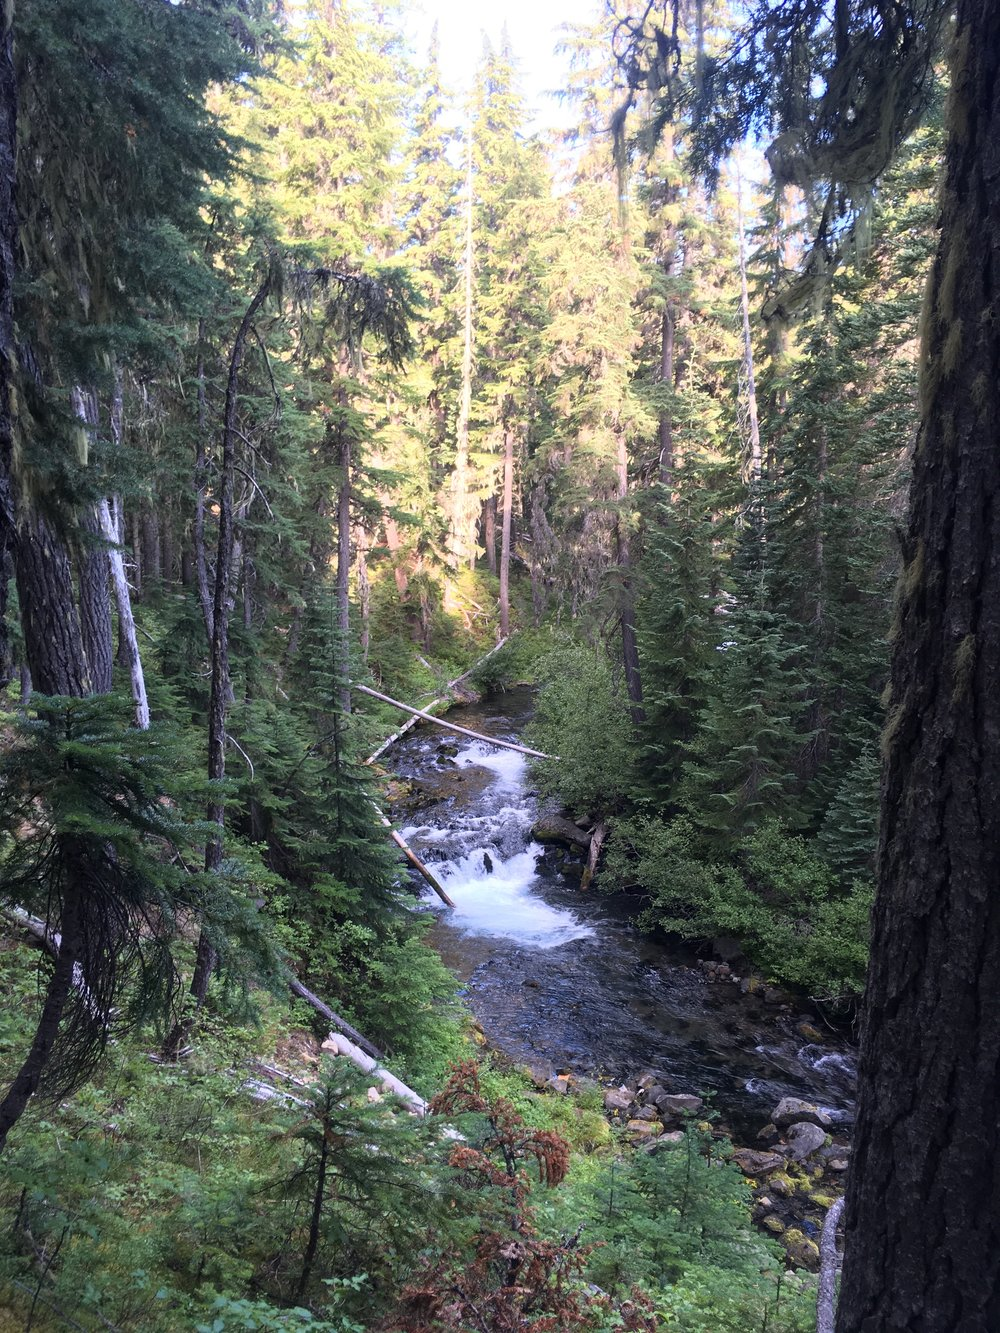 Trapper Creek, the largest creek we've seen since Mt Hood